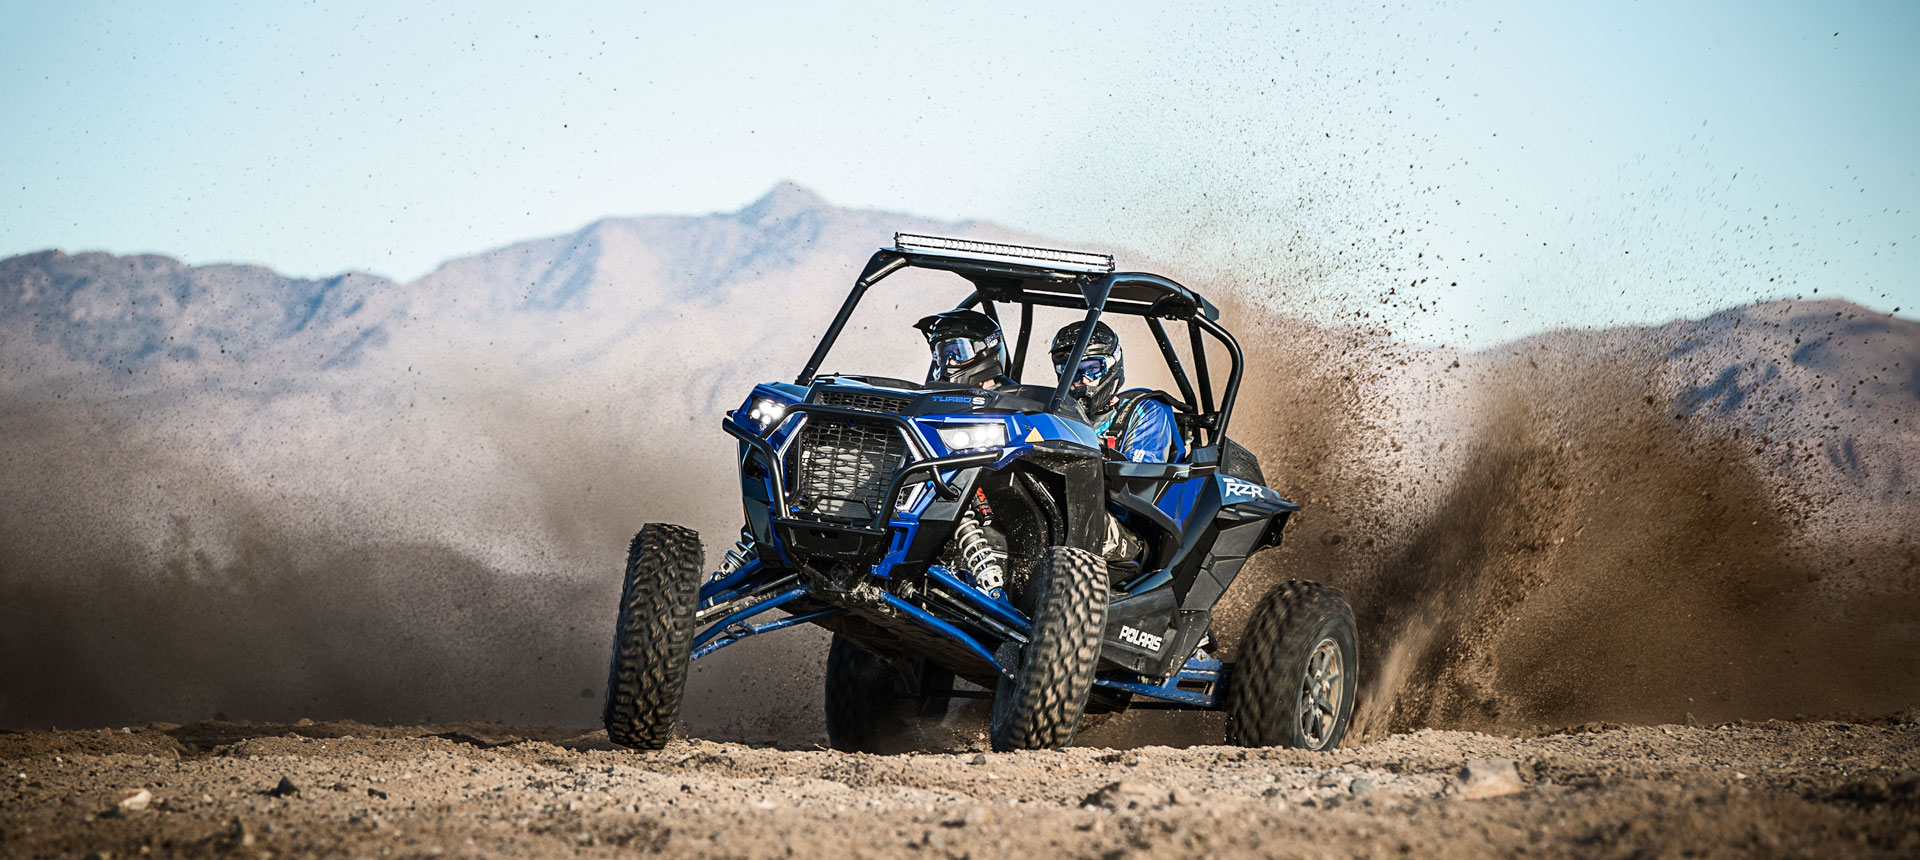 187 Polaris 174 Introduces 2019 Rzr Ranger And General Models